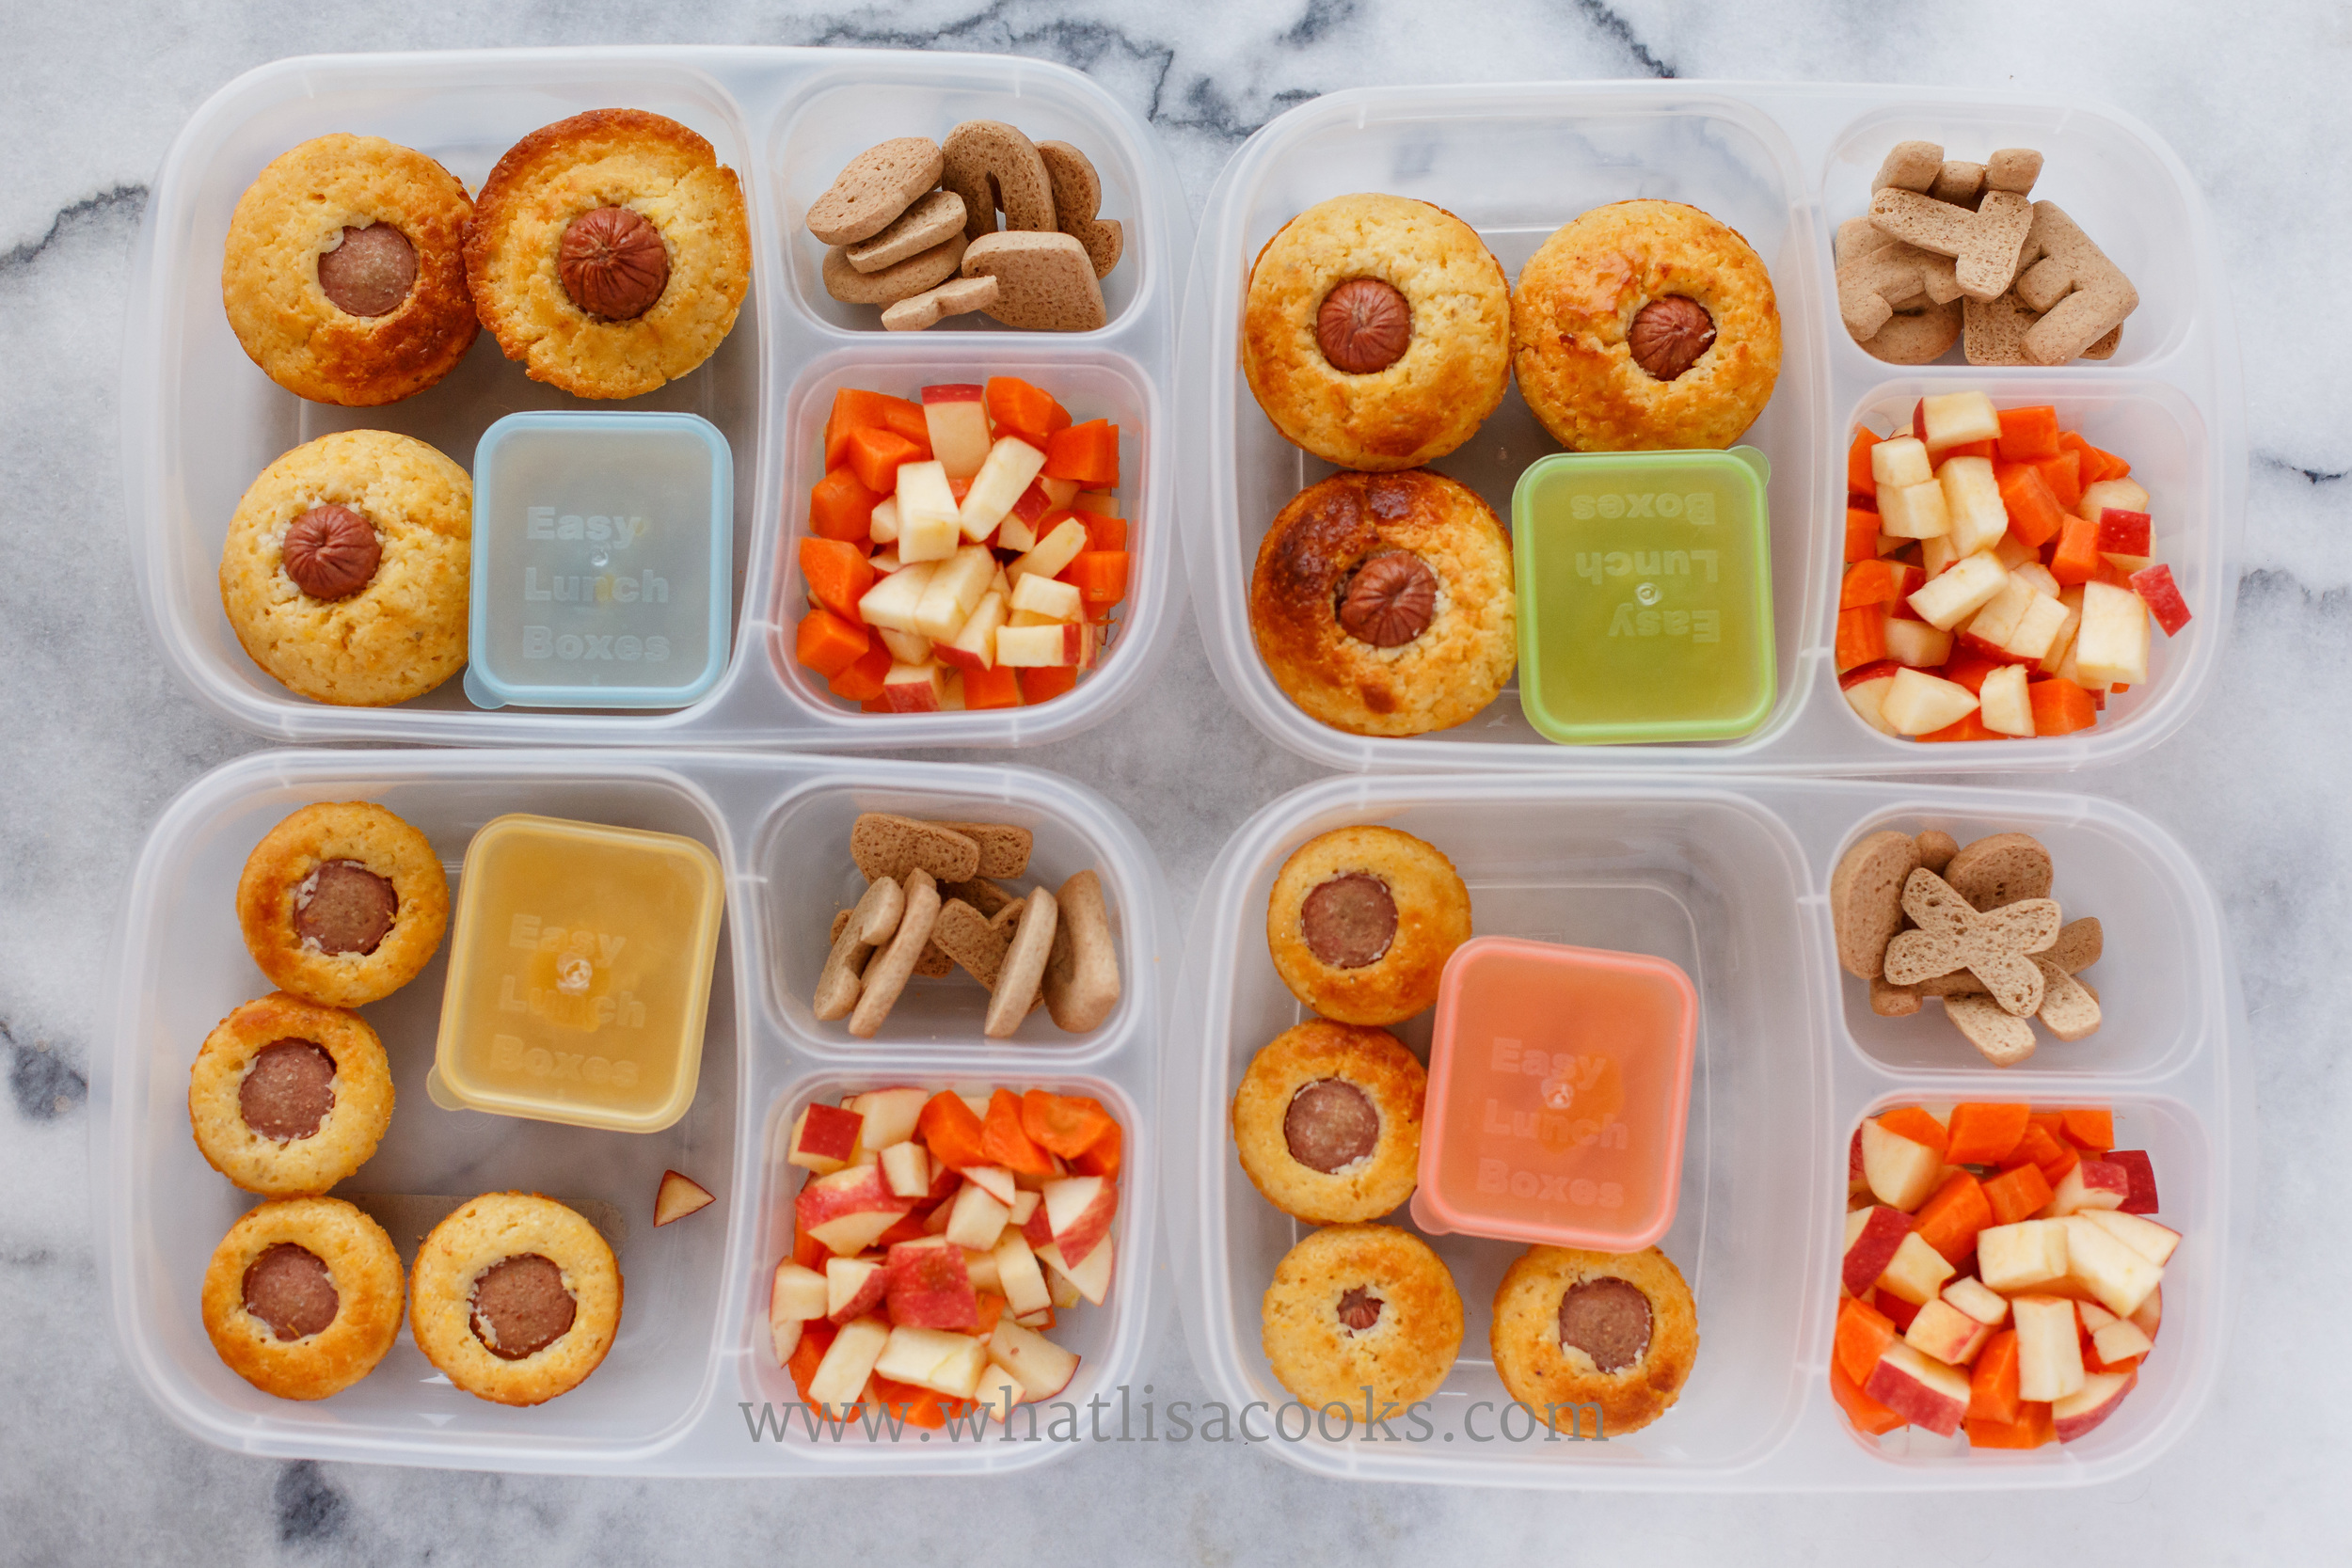 Corn dog muffins (from the freezer) with ketchup for dipping, bites of apple & carrot, letter cookies.